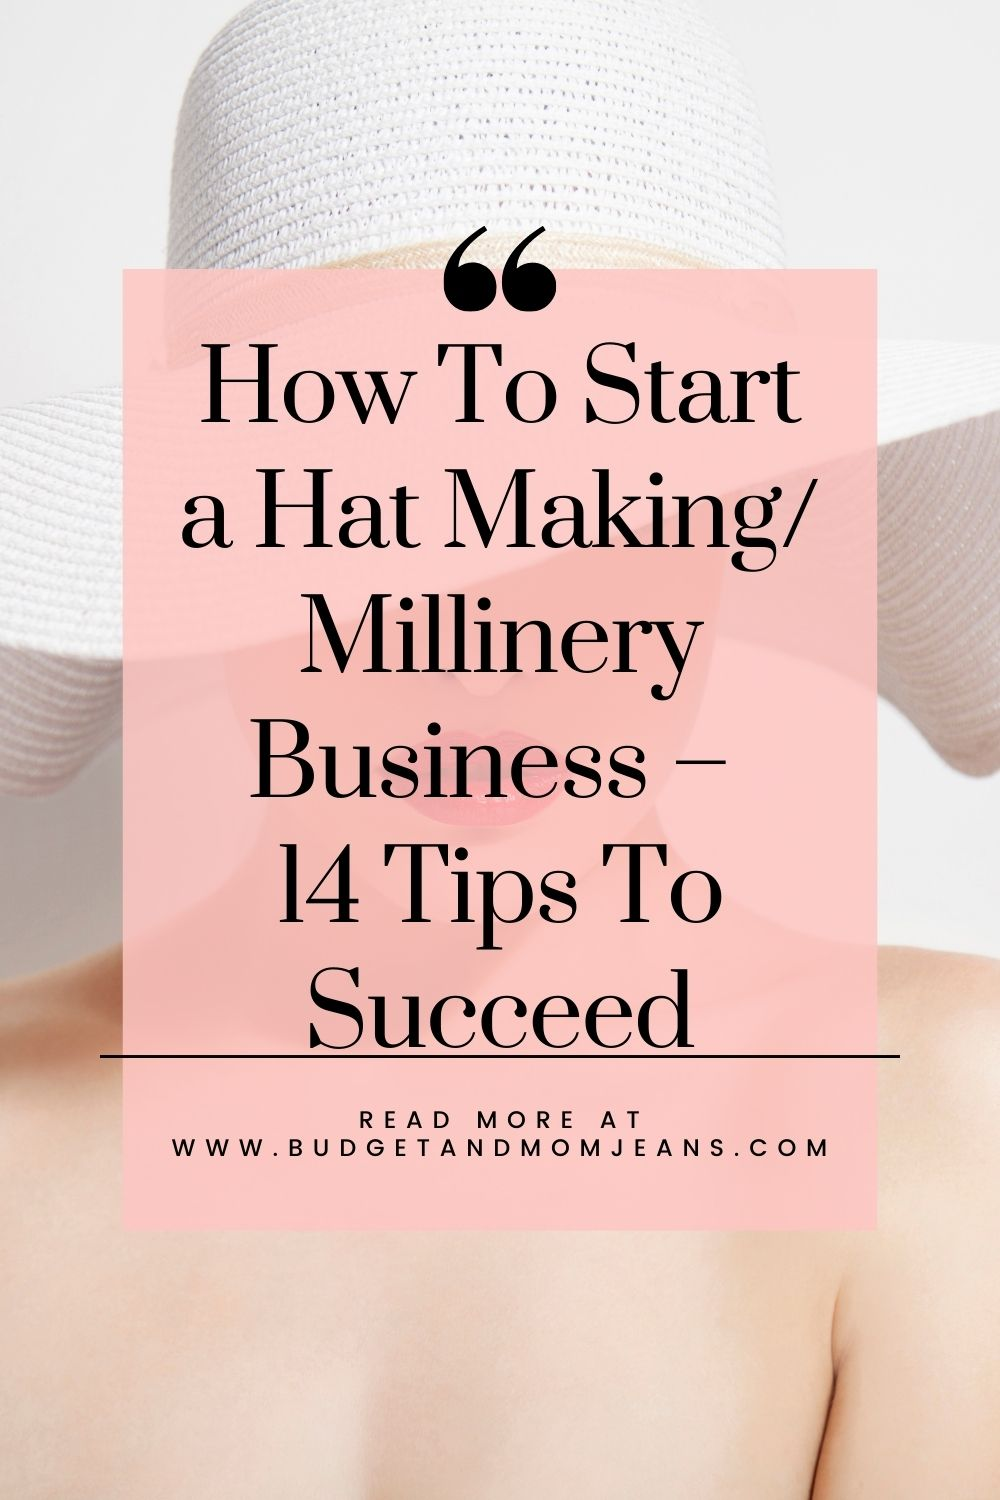 How To Start a Hat Making/Millinery Business - 14 Tips To Succeed